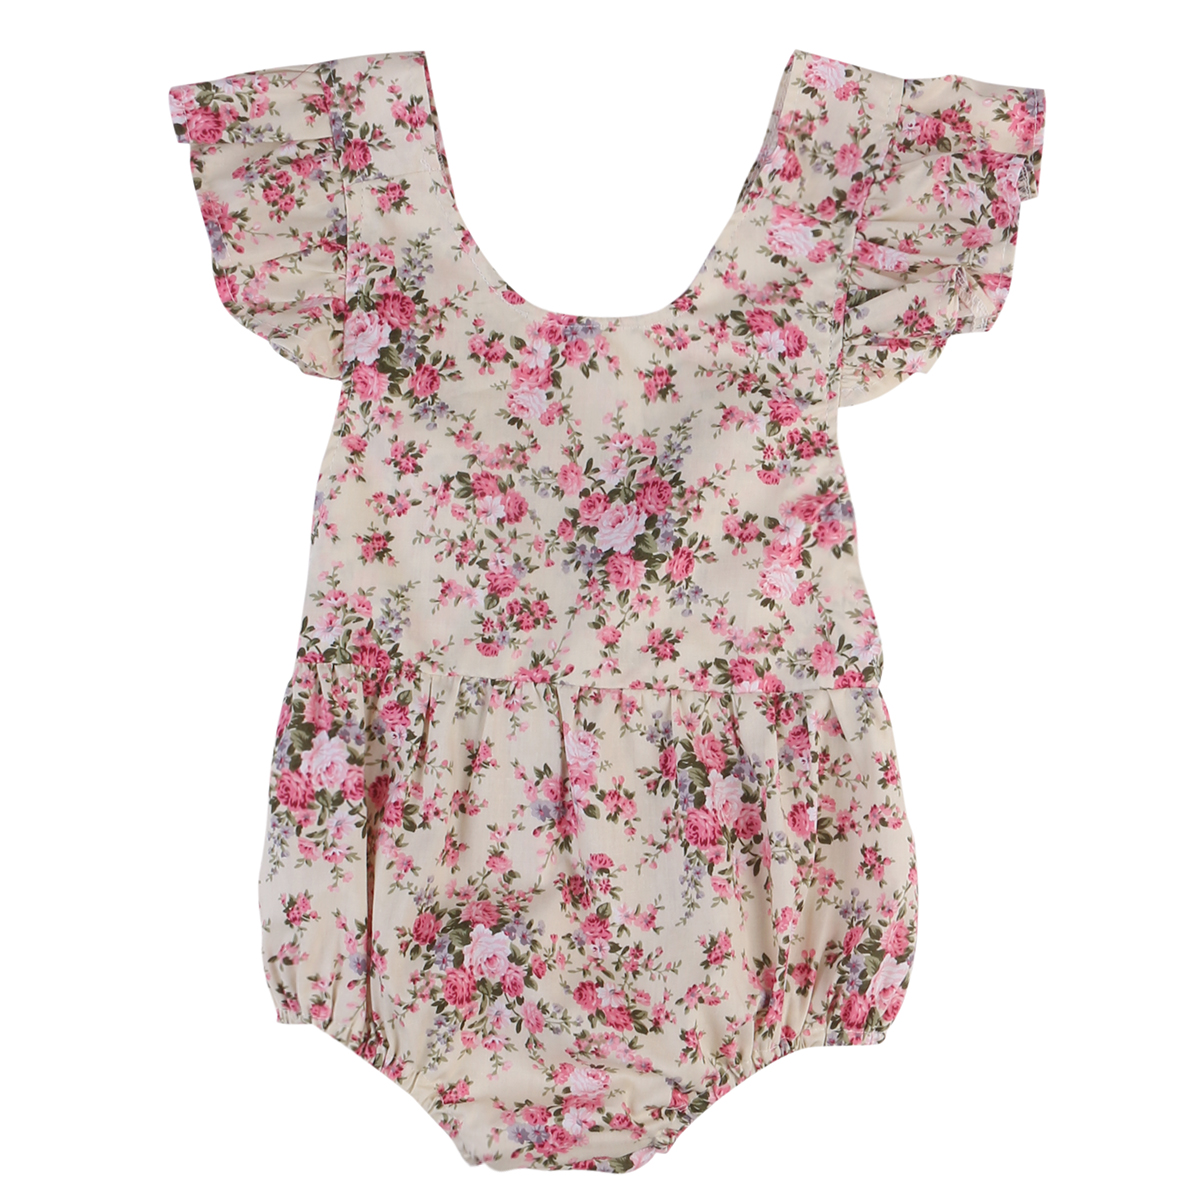 Floral Newborn Baby Girl Romper 2017 Summer Ruffles Sleeve Toddler Kids Jumpsuit Outfits Sunsuit One Pieces summer newborn infant baby girl romper short sleeve floral romper jumpsuit outfits sunsuit clothes